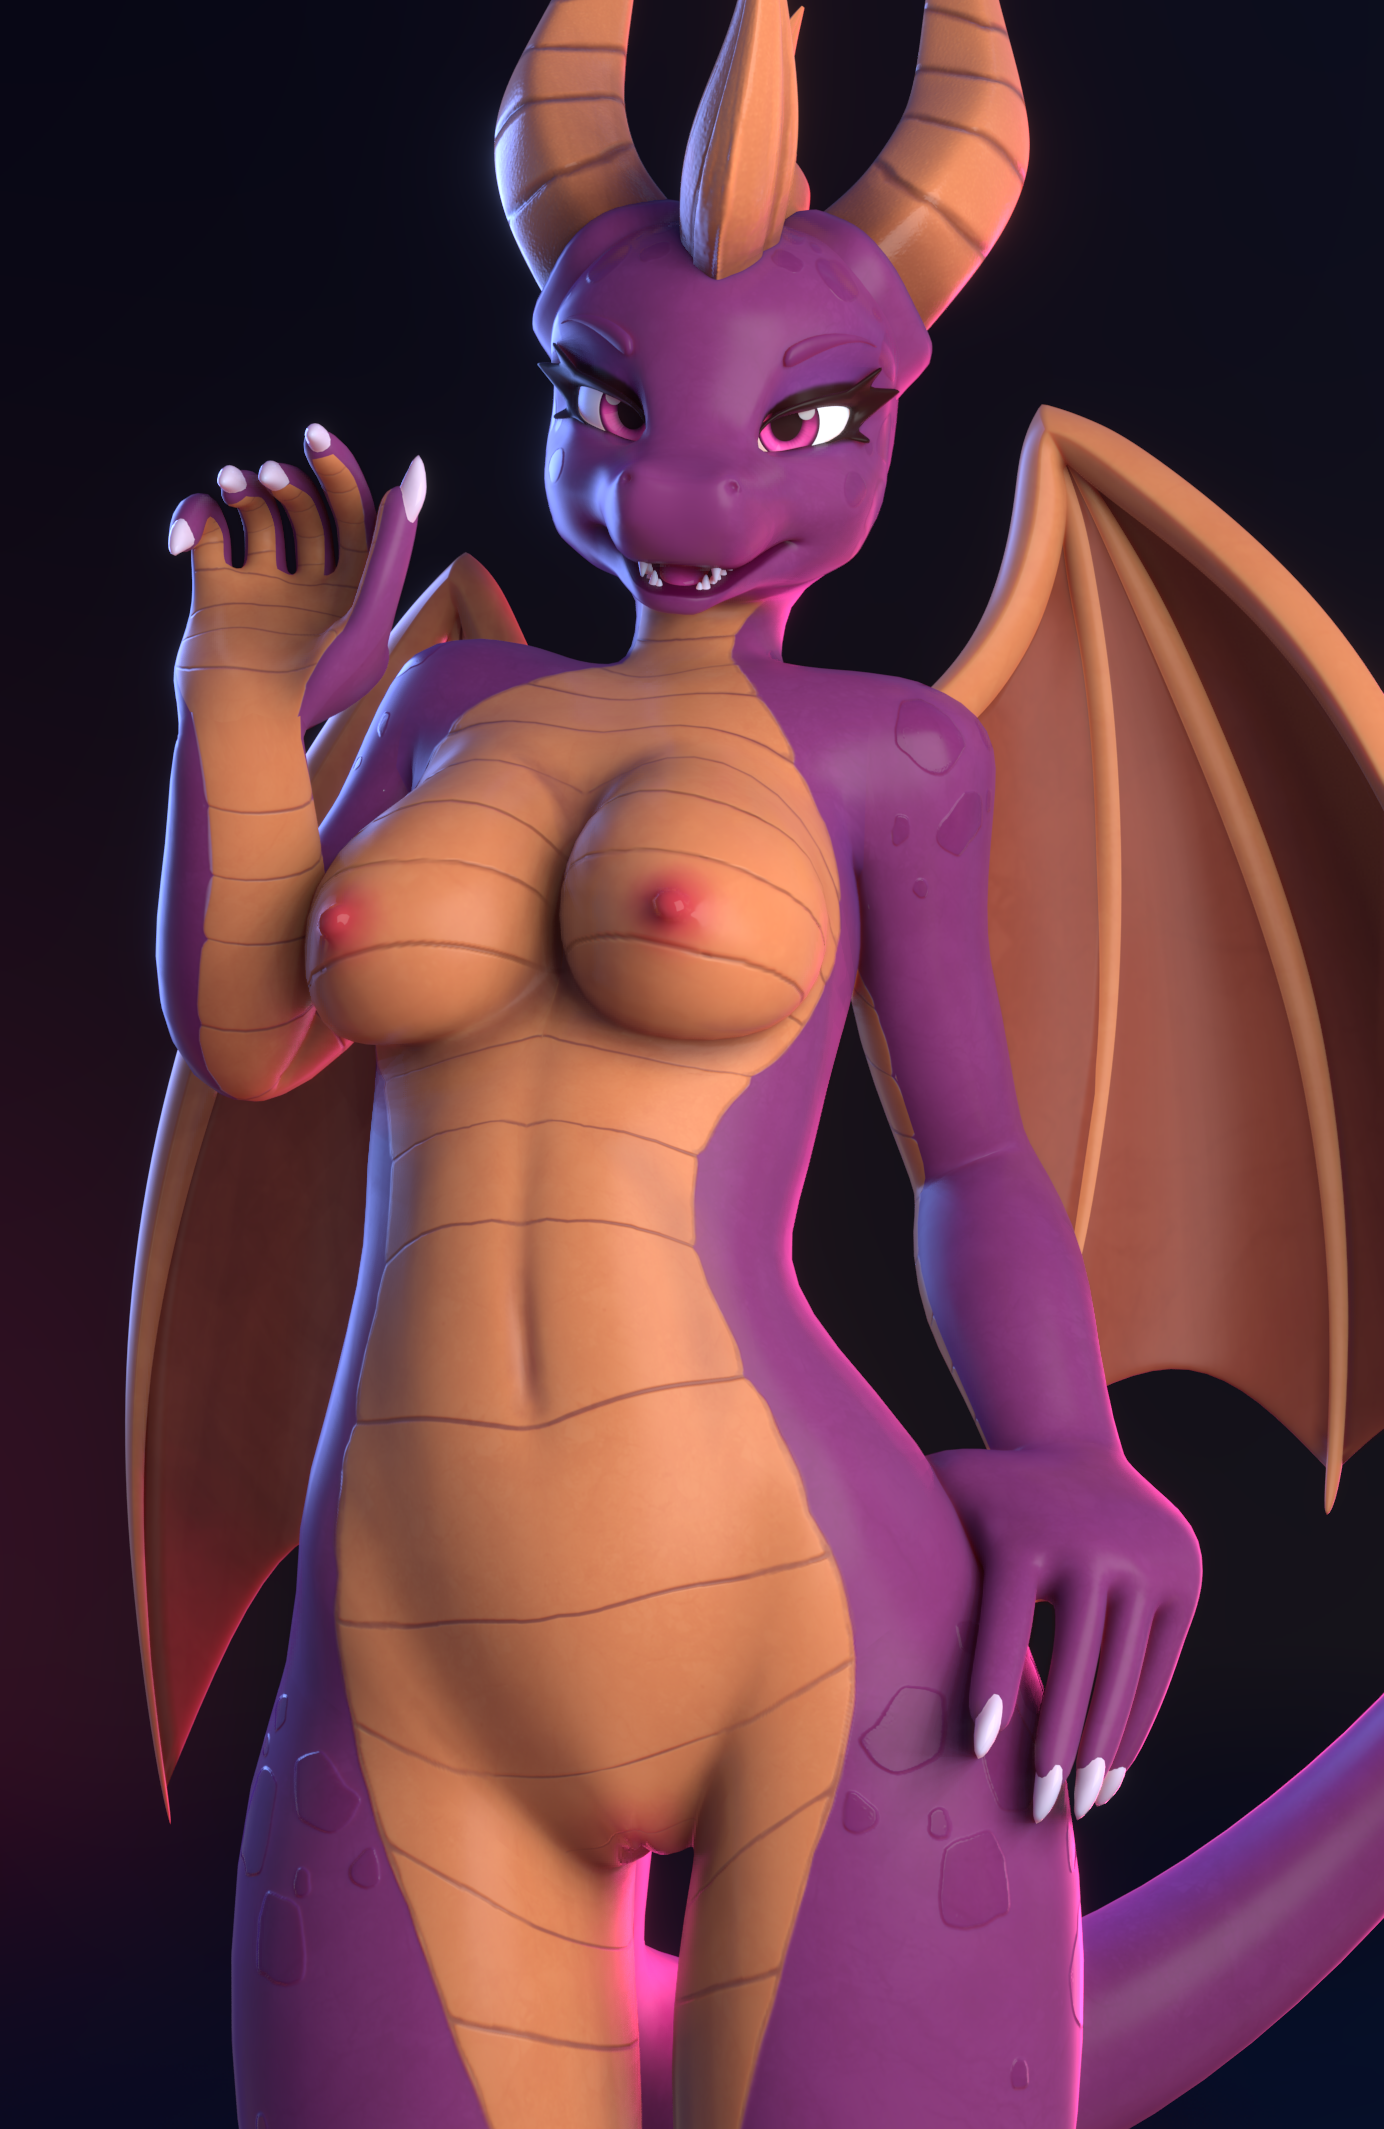 Ychan - f - 3d model furry females - 139936